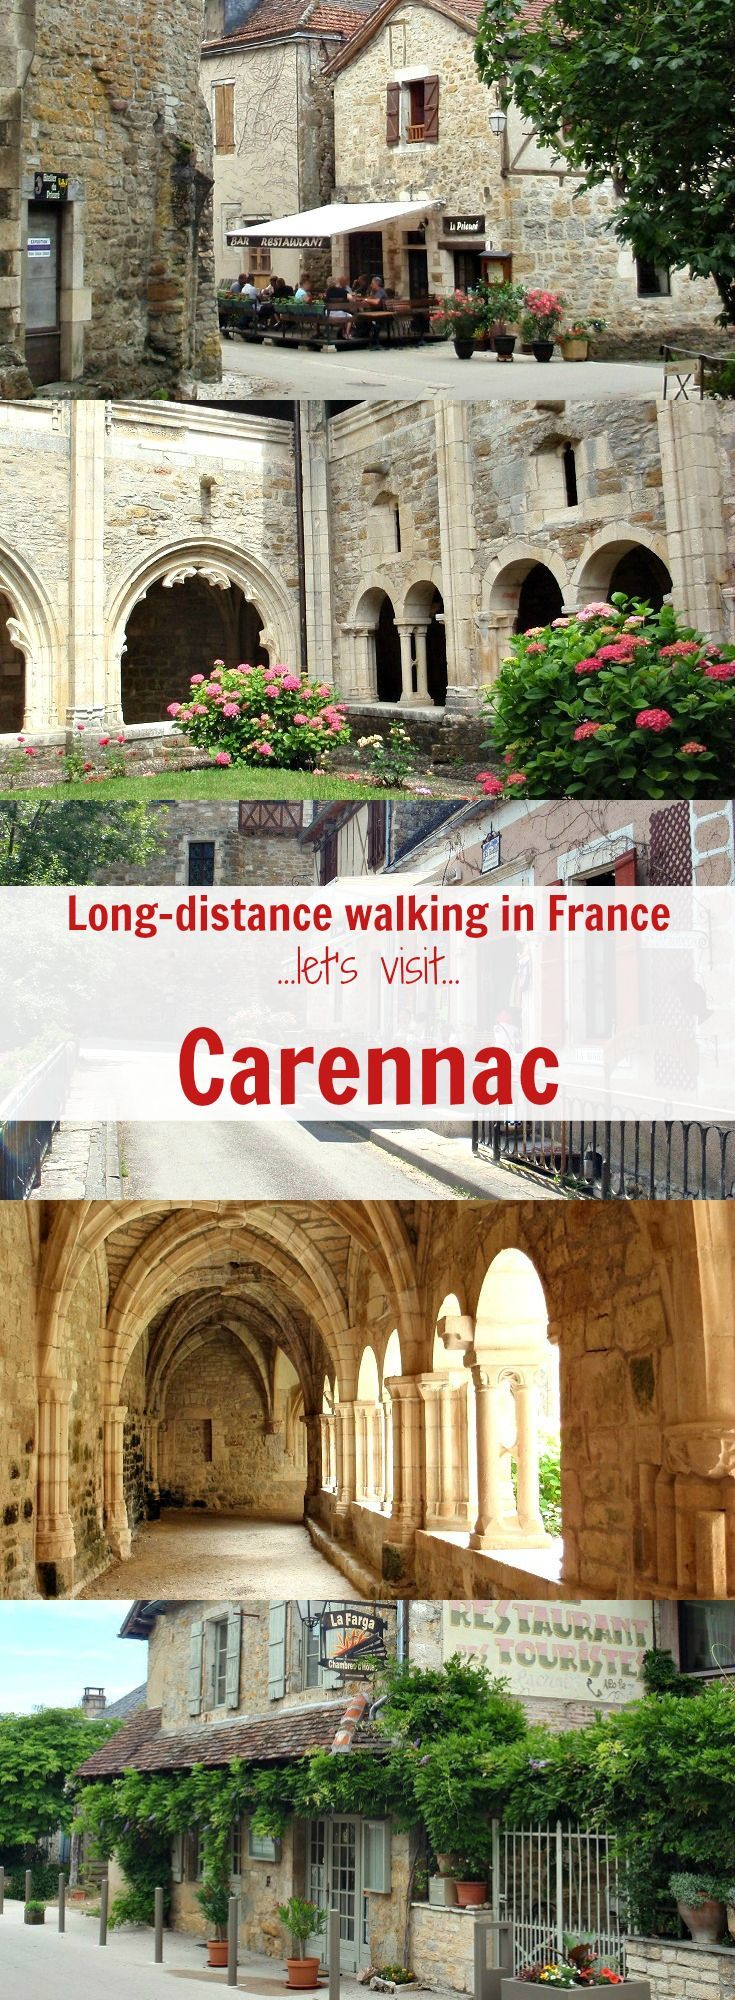 900 years ago, in the 11th century, Cluny monks built a monastery in a clearing near the Dordogne River. A village developed around the abbey, a château was built and high walls protected the occupants.Today, this village known as Carennac is classified among France's 'most beautiful'.Learn where to stay, what to see